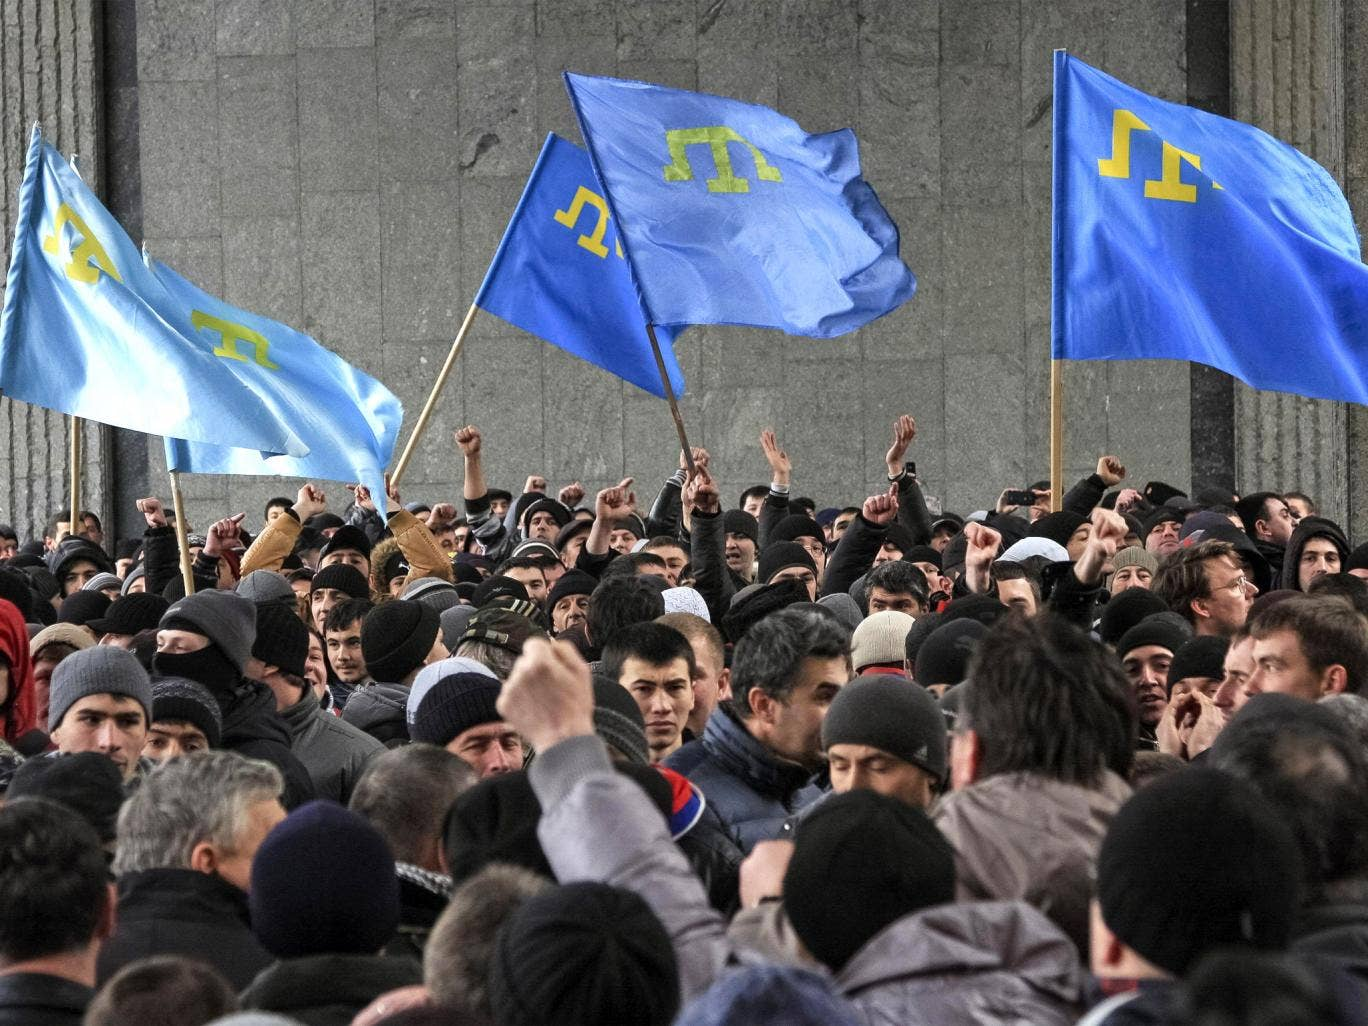 A rally by Tatars near the Crimean parliament building in Simferopol last week led to scuffles with ethnic Russians